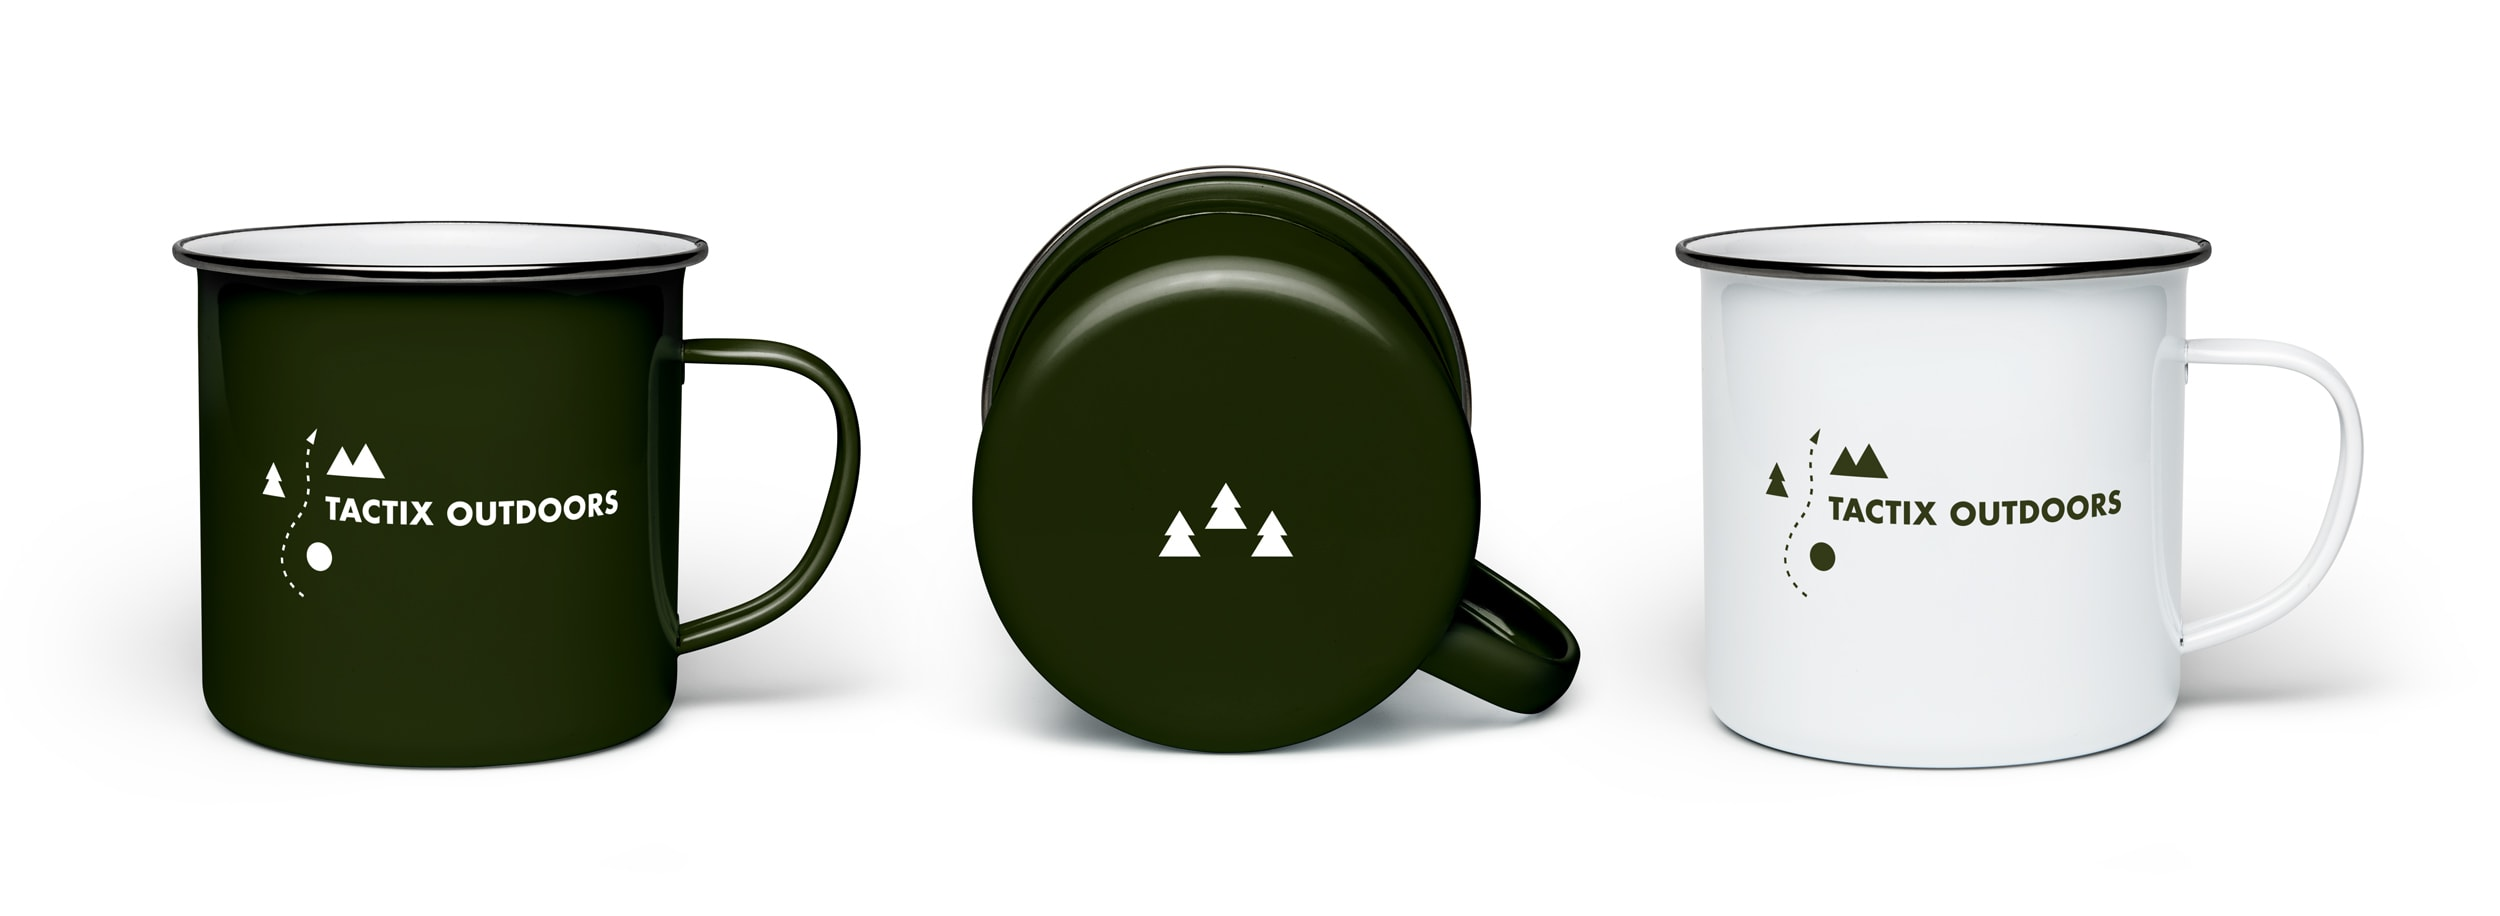 Enamel travel and camping mug for Tactix Outdoors